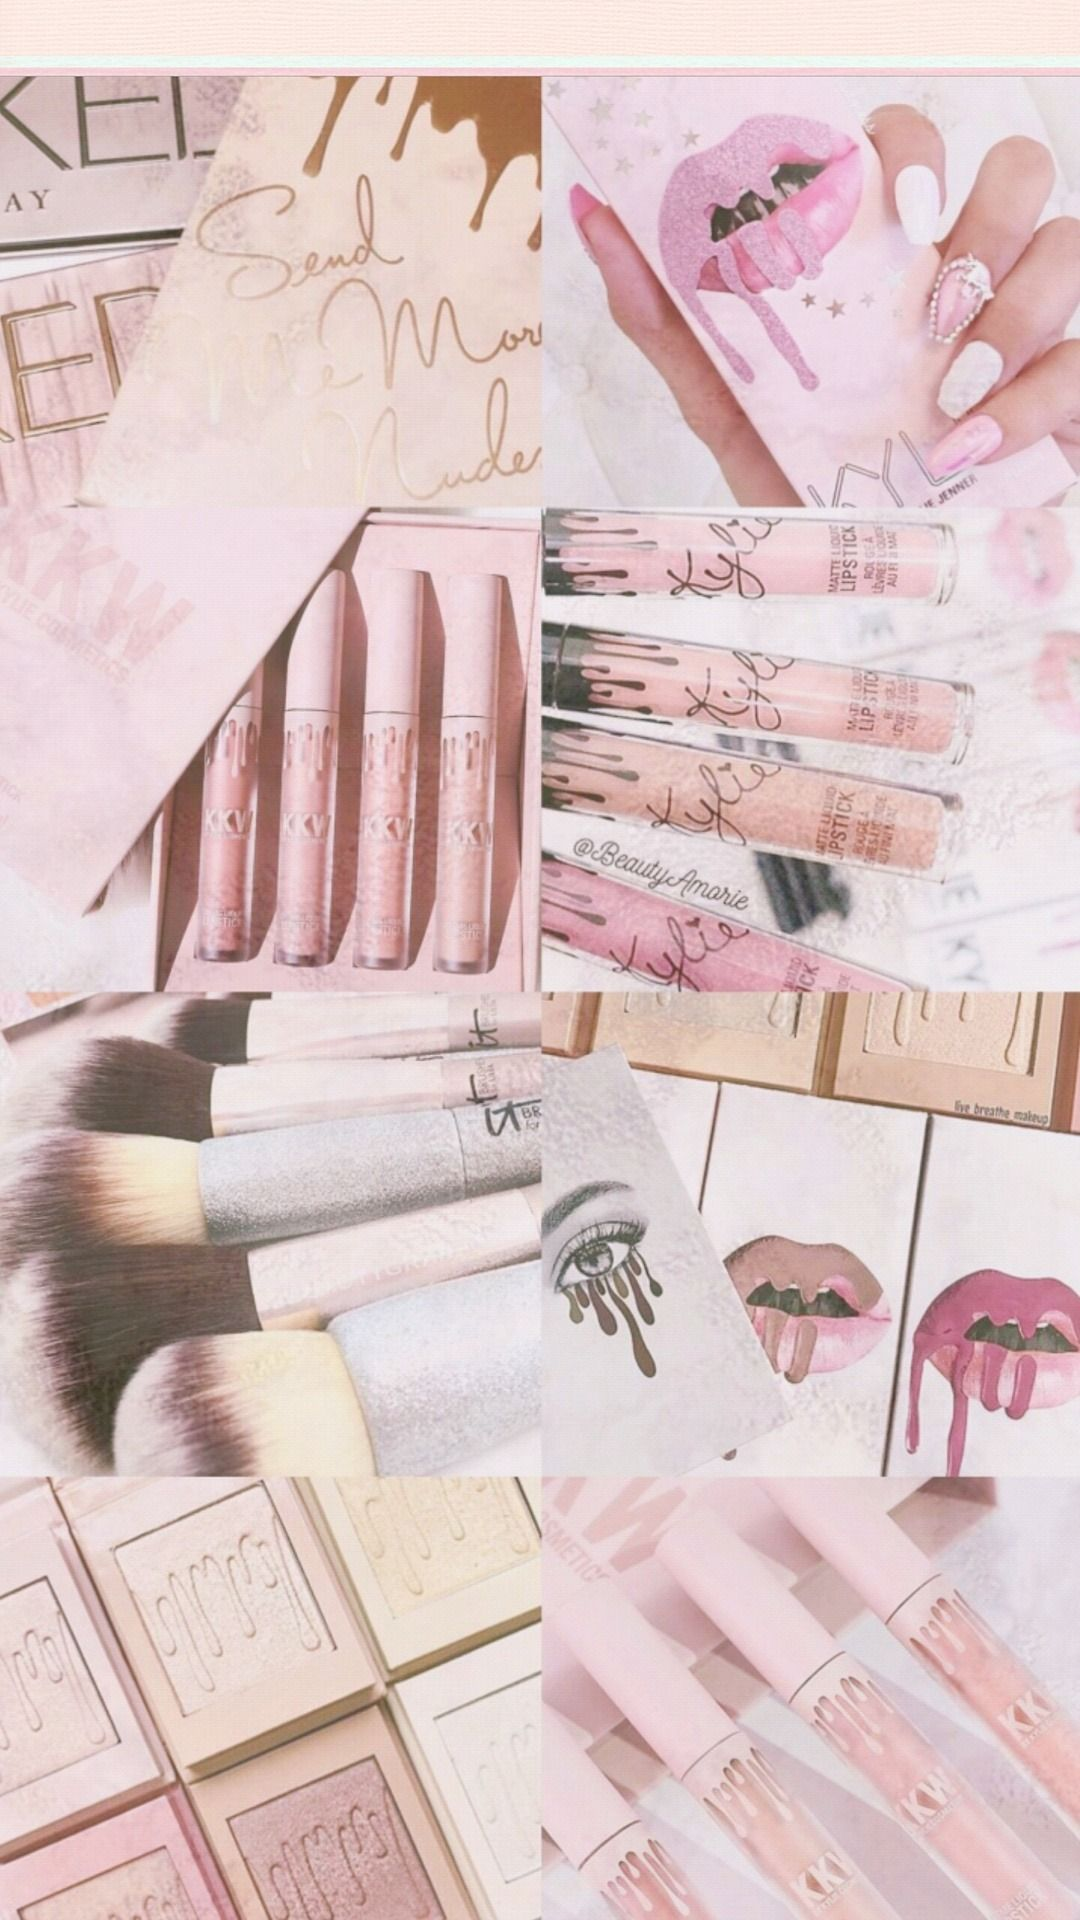 Aesthetic Makeup Wallpaper : aesthetic, makeup, wallpaper, ❄WALLPAPERS❄, Walls, Backgrounds, Girly,, Makeup, Collage,, Wallpapers